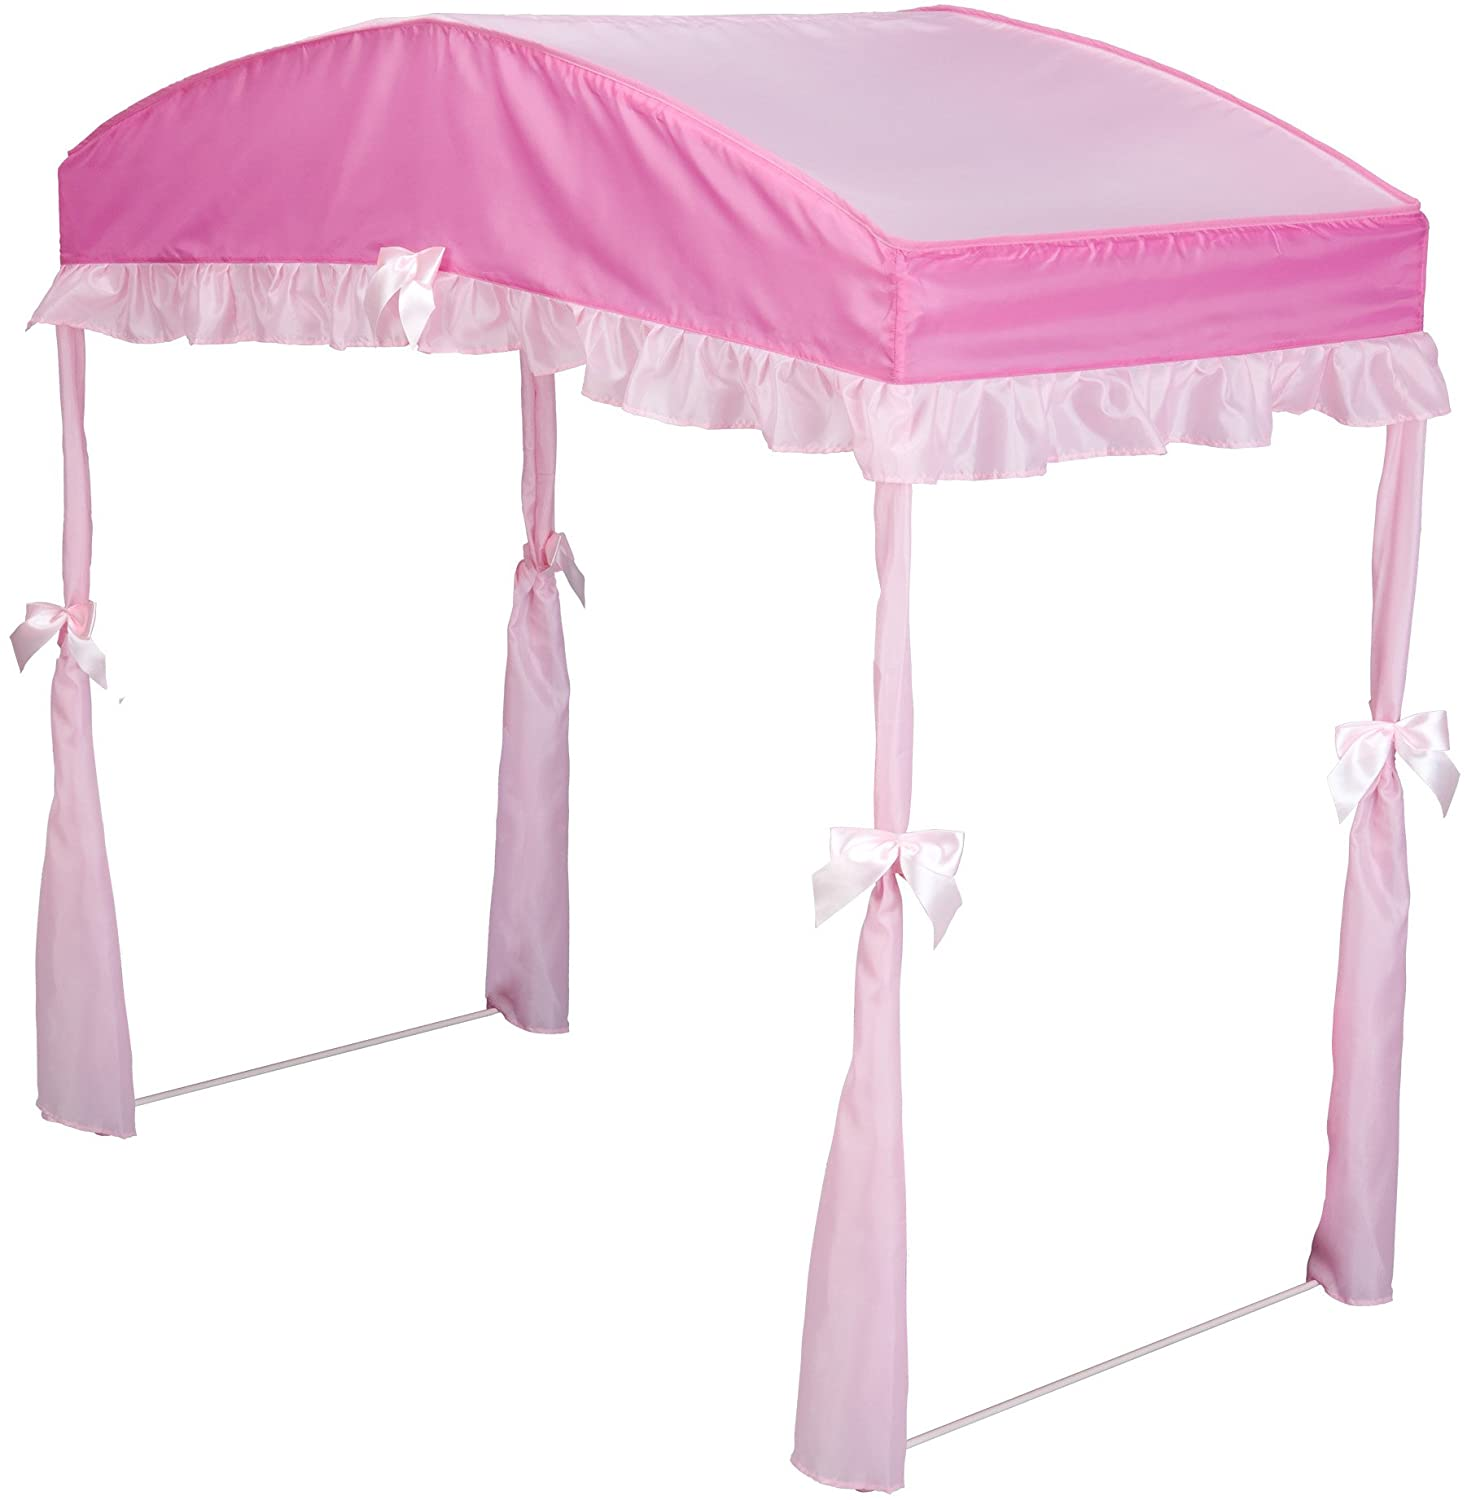 Amazon.com  Delta Children Girls Canopy for Toddler Bed Pink  Bed Tent For Toddler Bed  Baby  sc 1 st  Amazon.com & Amazon.com : Delta Children Girls Canopy for Toddler Bed Pink ...